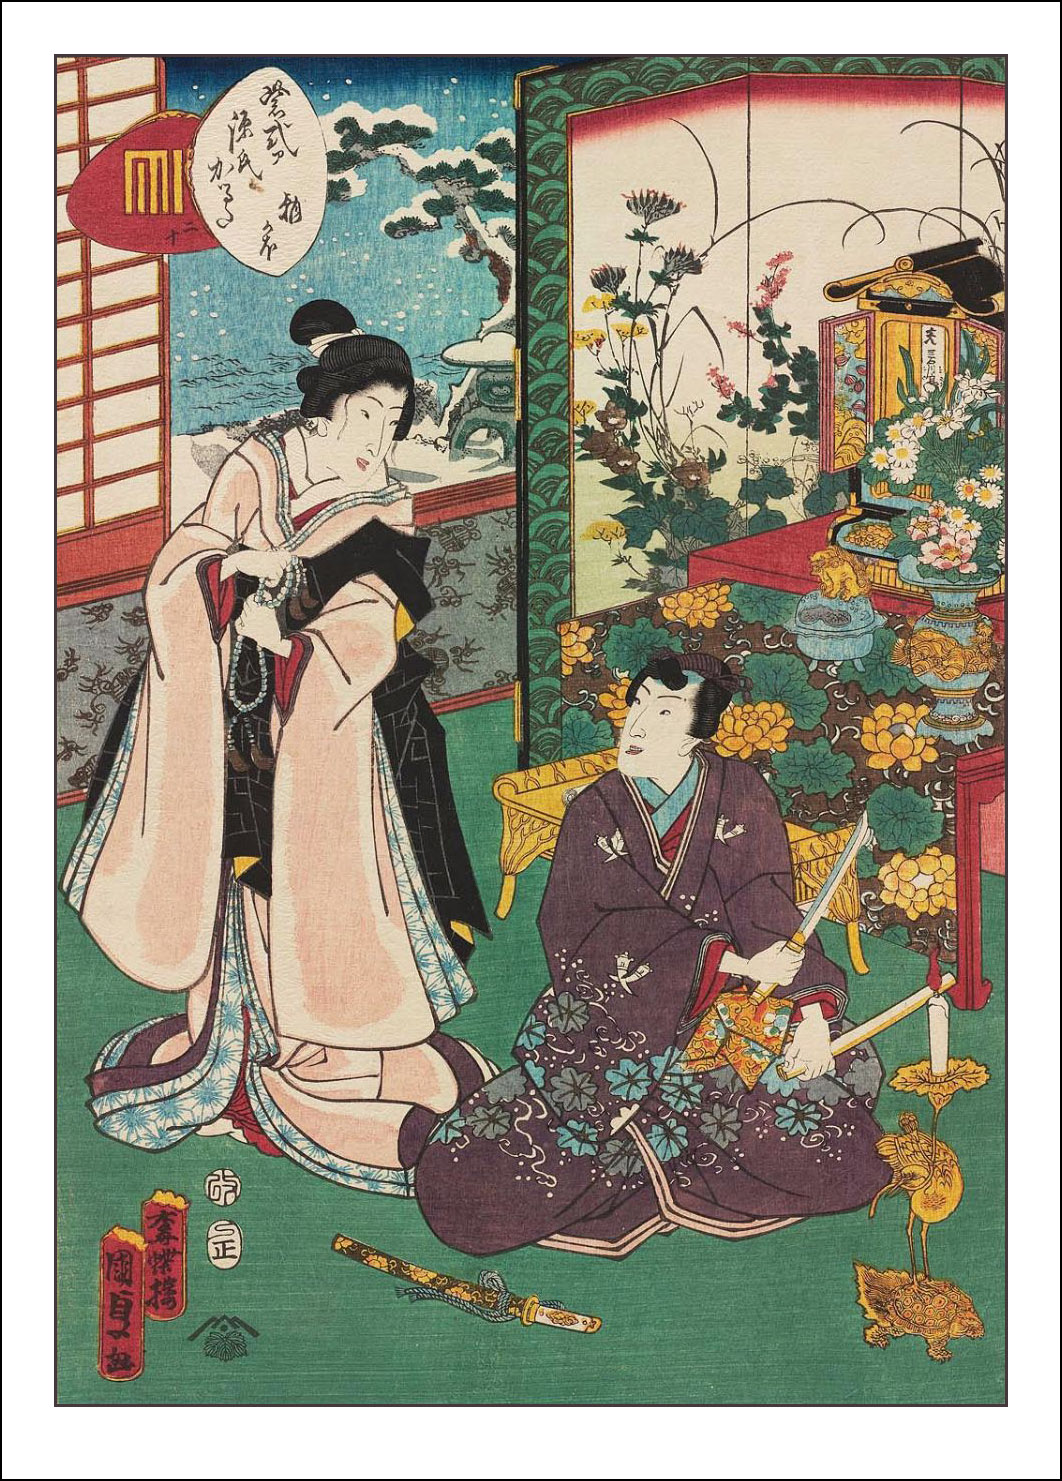 Kunisada II, The Tale of Genji